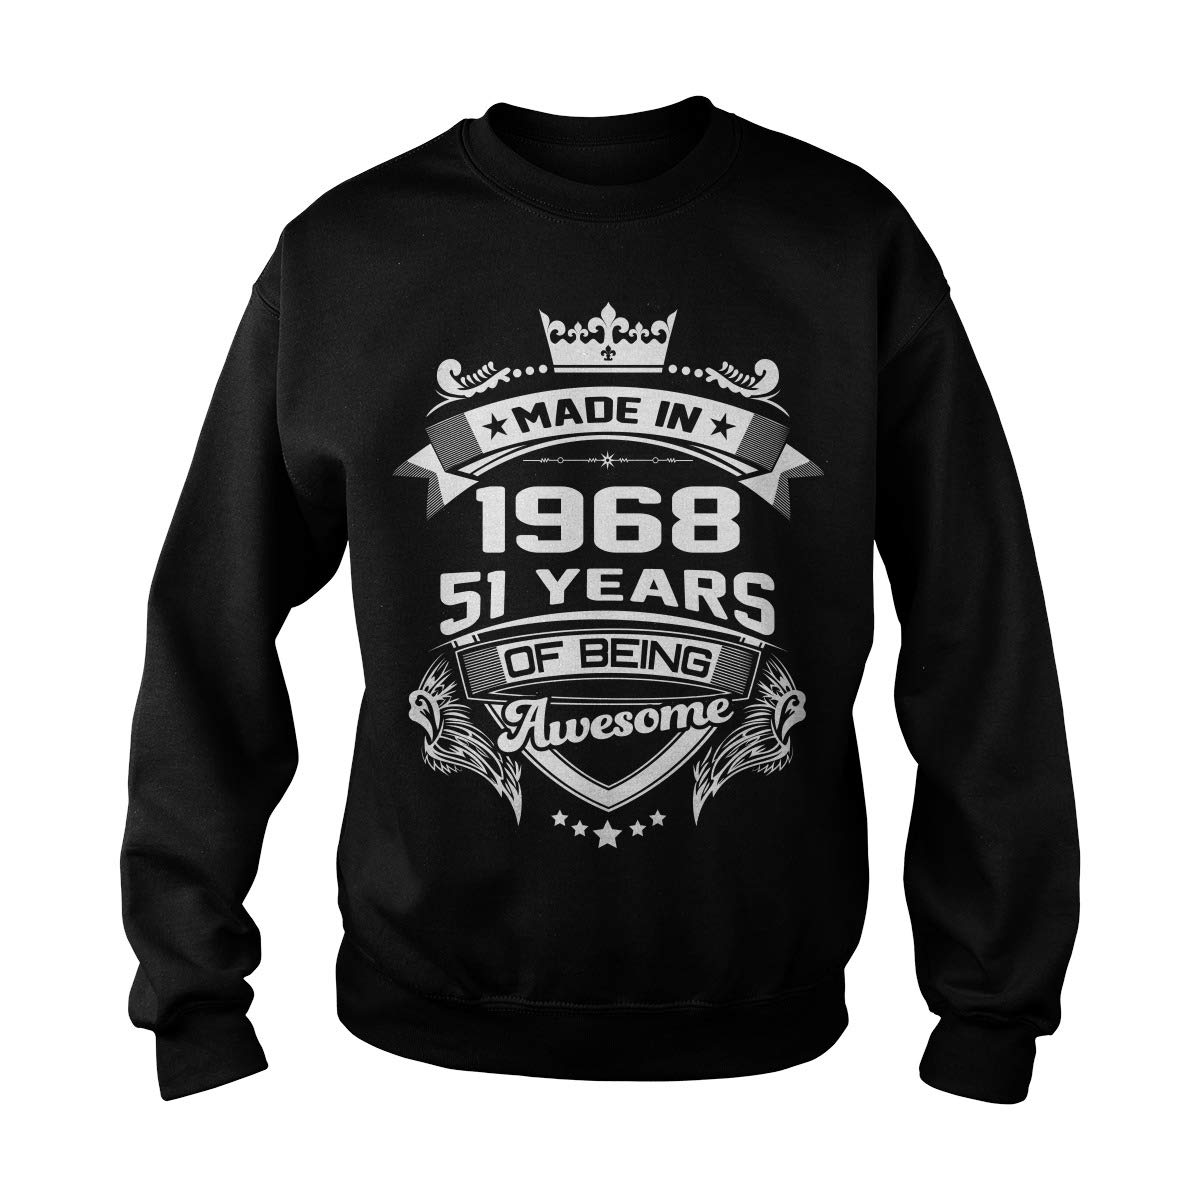 Made in 1968-51 Years of Being Awesome Adult Crewneck Sweatshirt